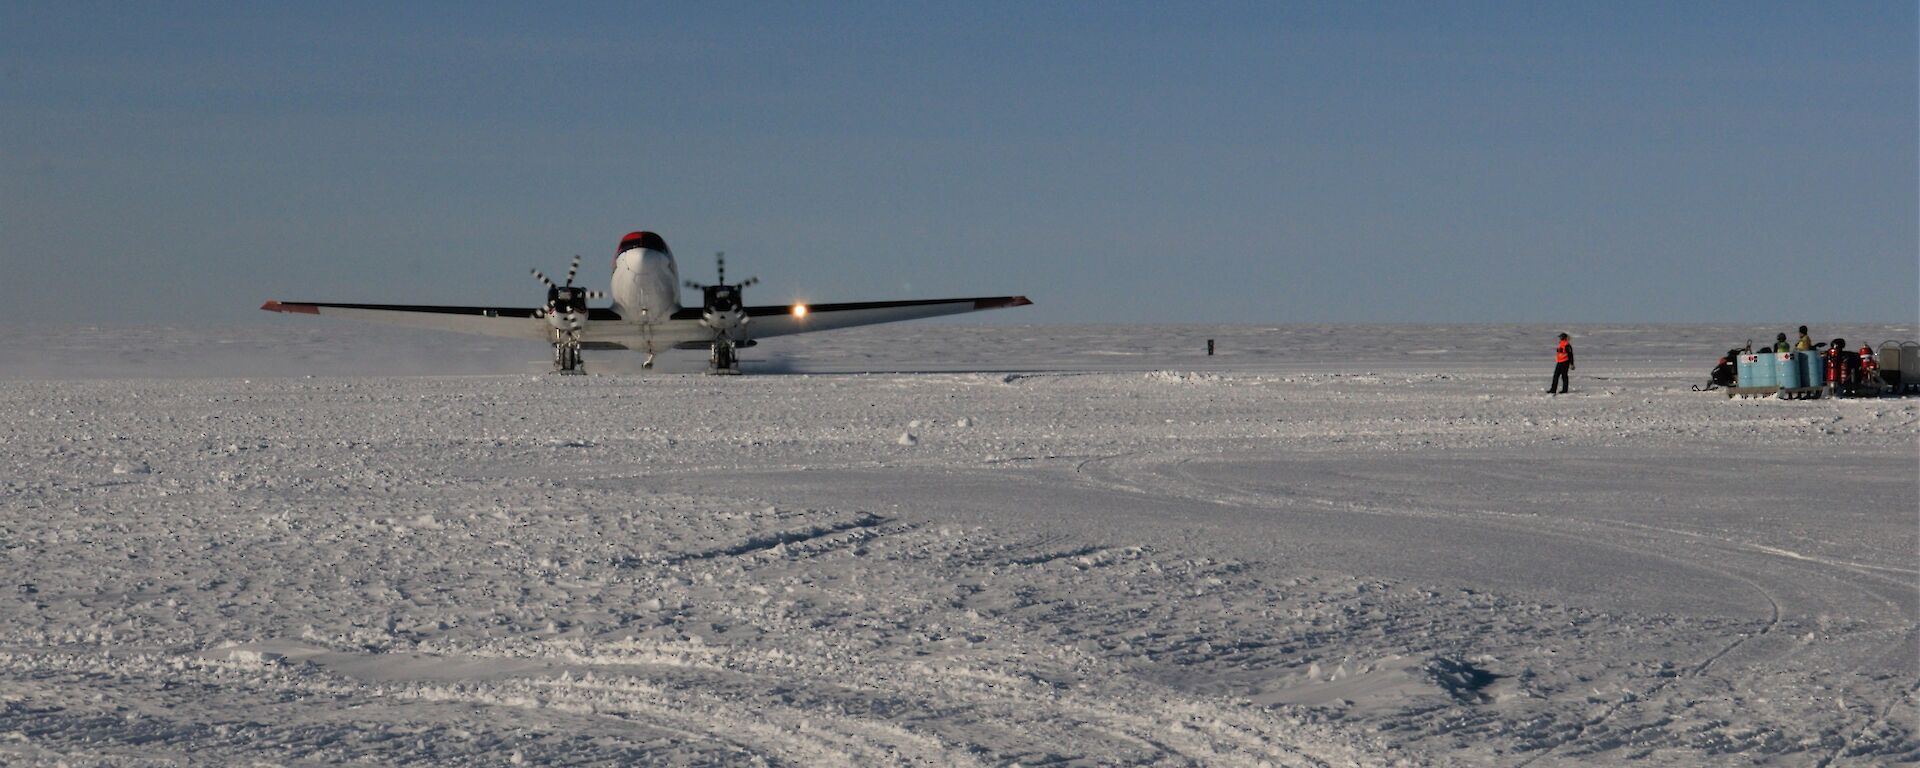 a plane lands on snow runway